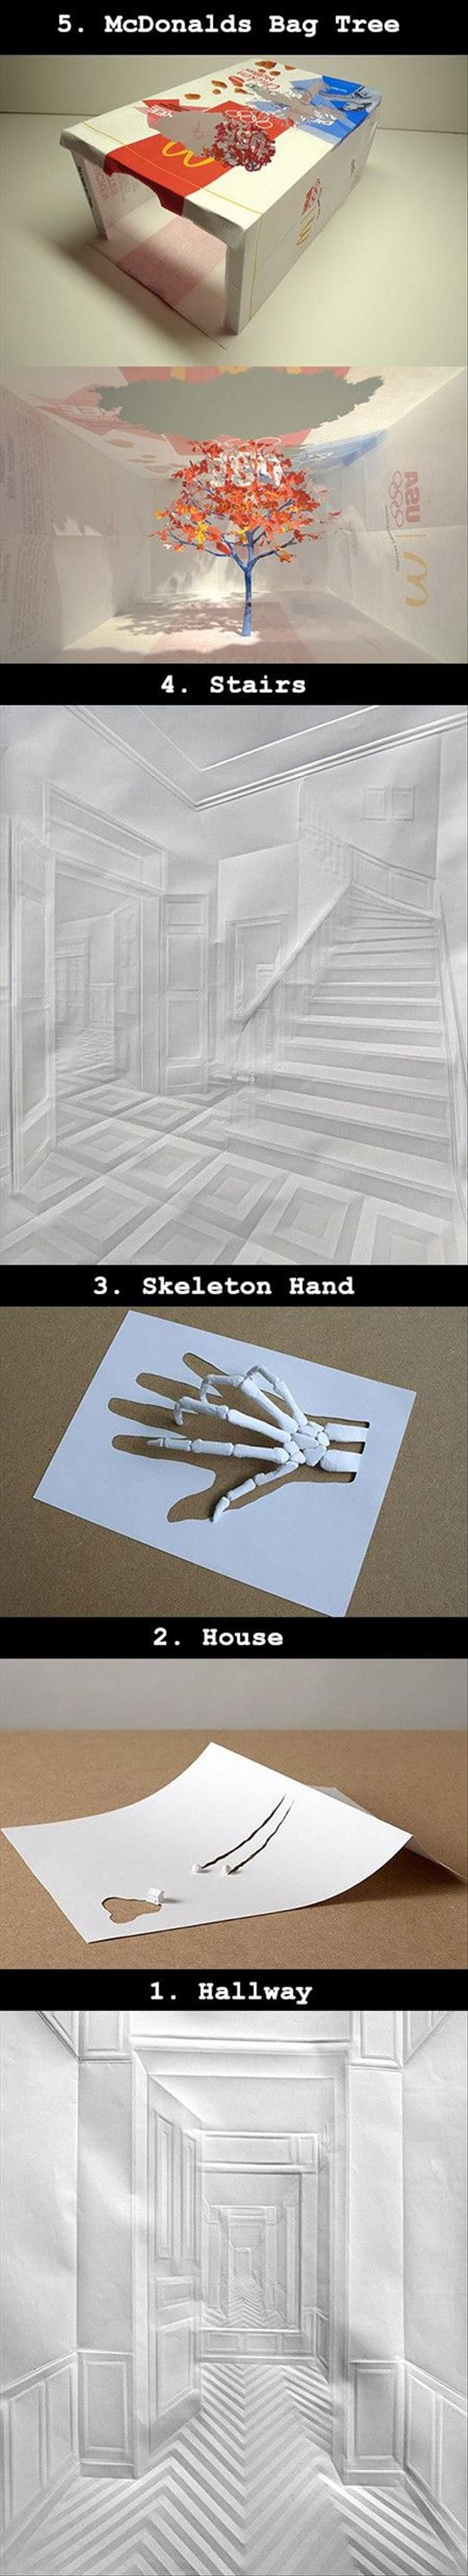 Art made with paper. The way perspective is represented just by folding paper takes my breath away